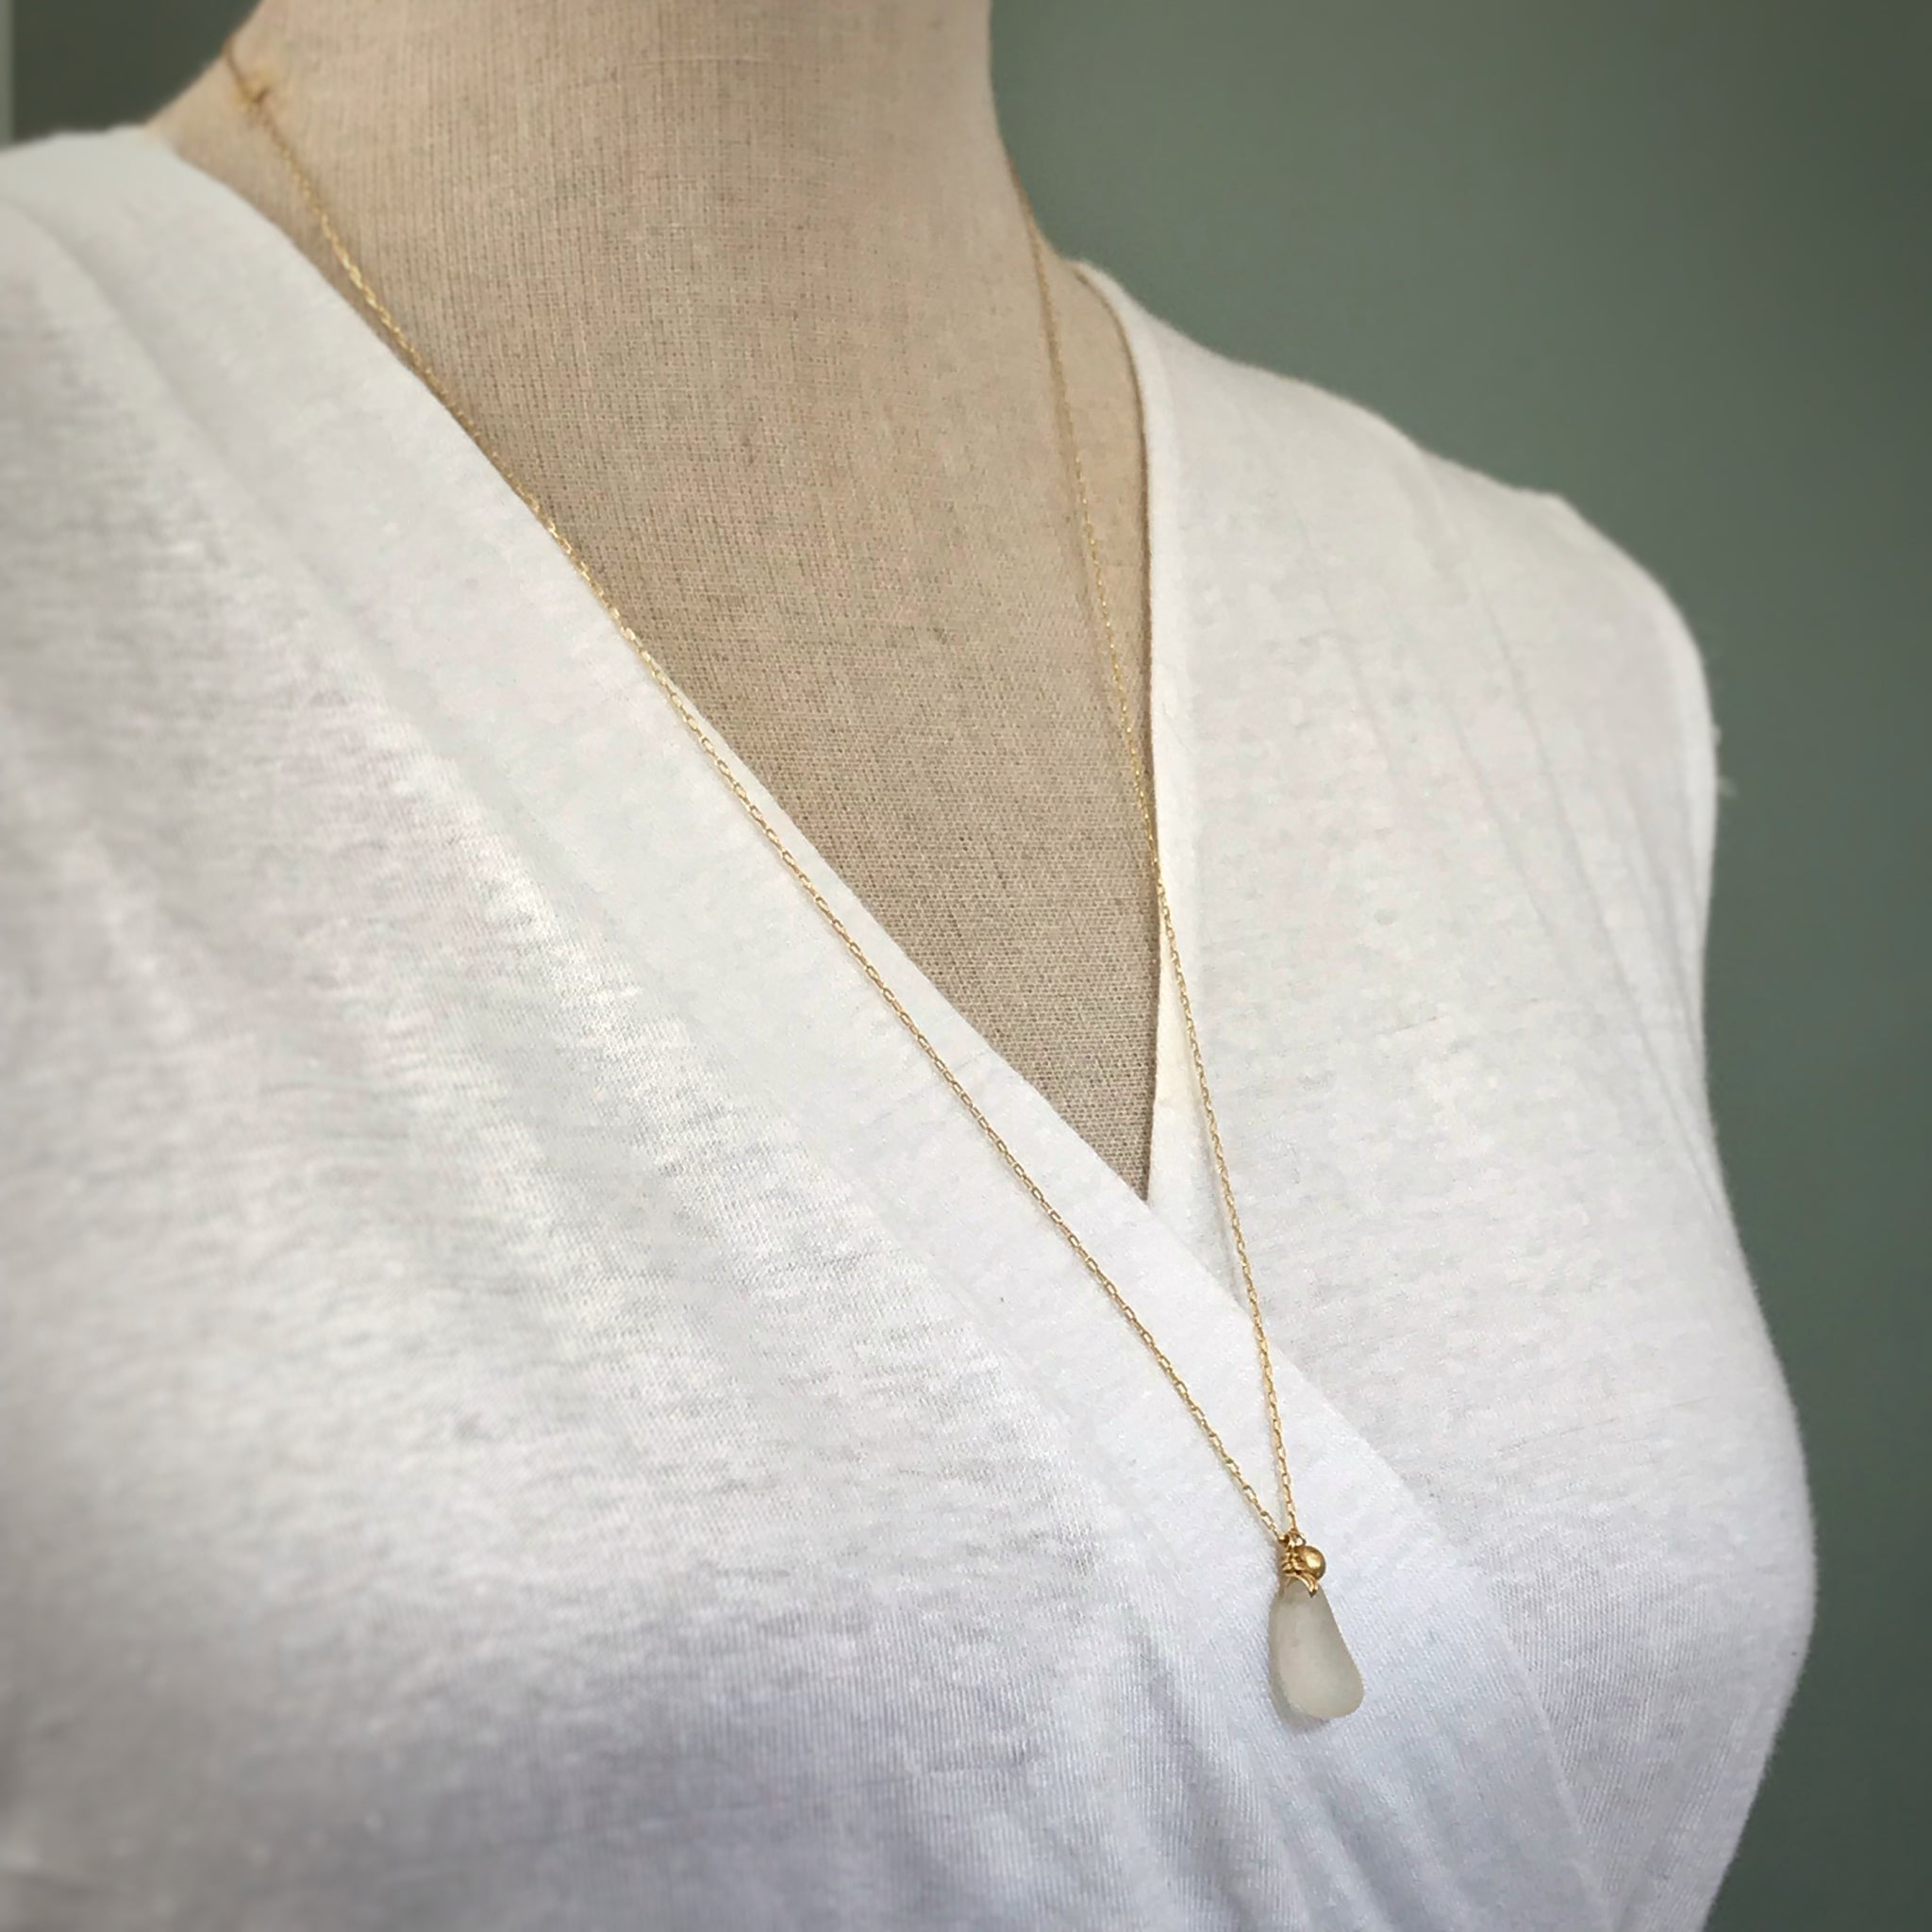 Clear Seaglass Necklace on Long Gold chain with gold charm  - kriket broadhurst seaglass jewellery unusual gift